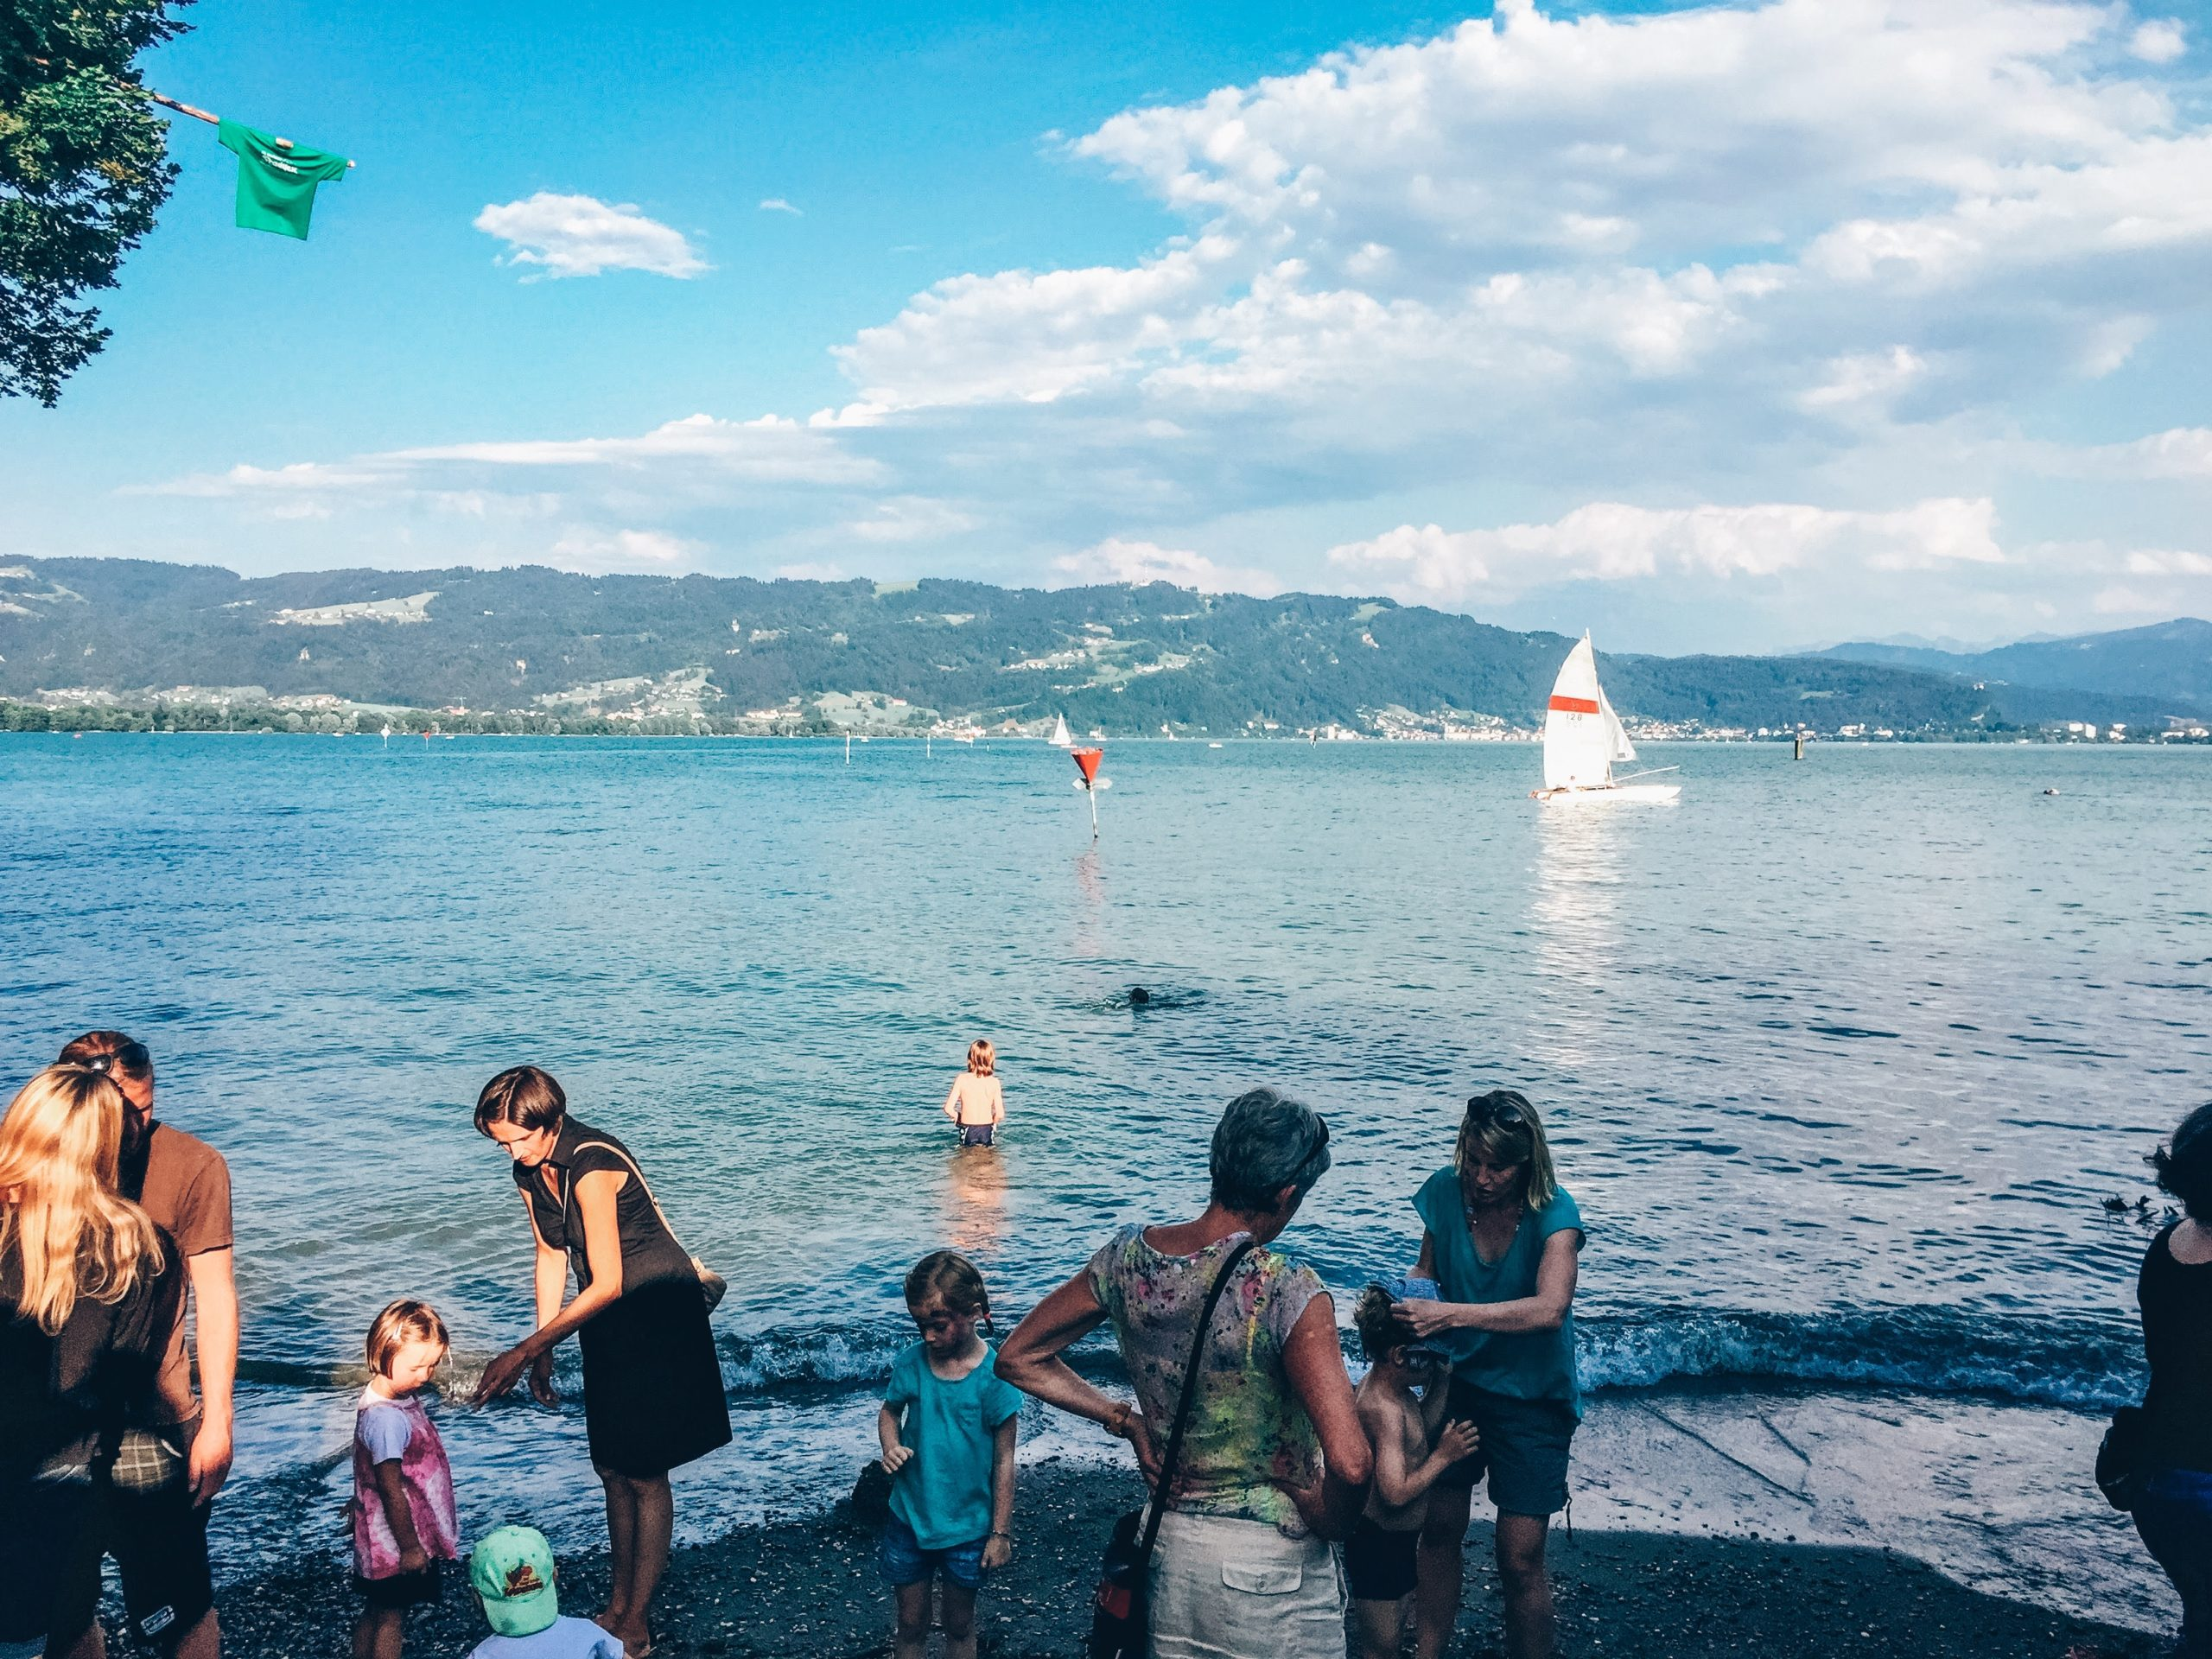 beach on Lake Constance (Bodensee) facing Austria